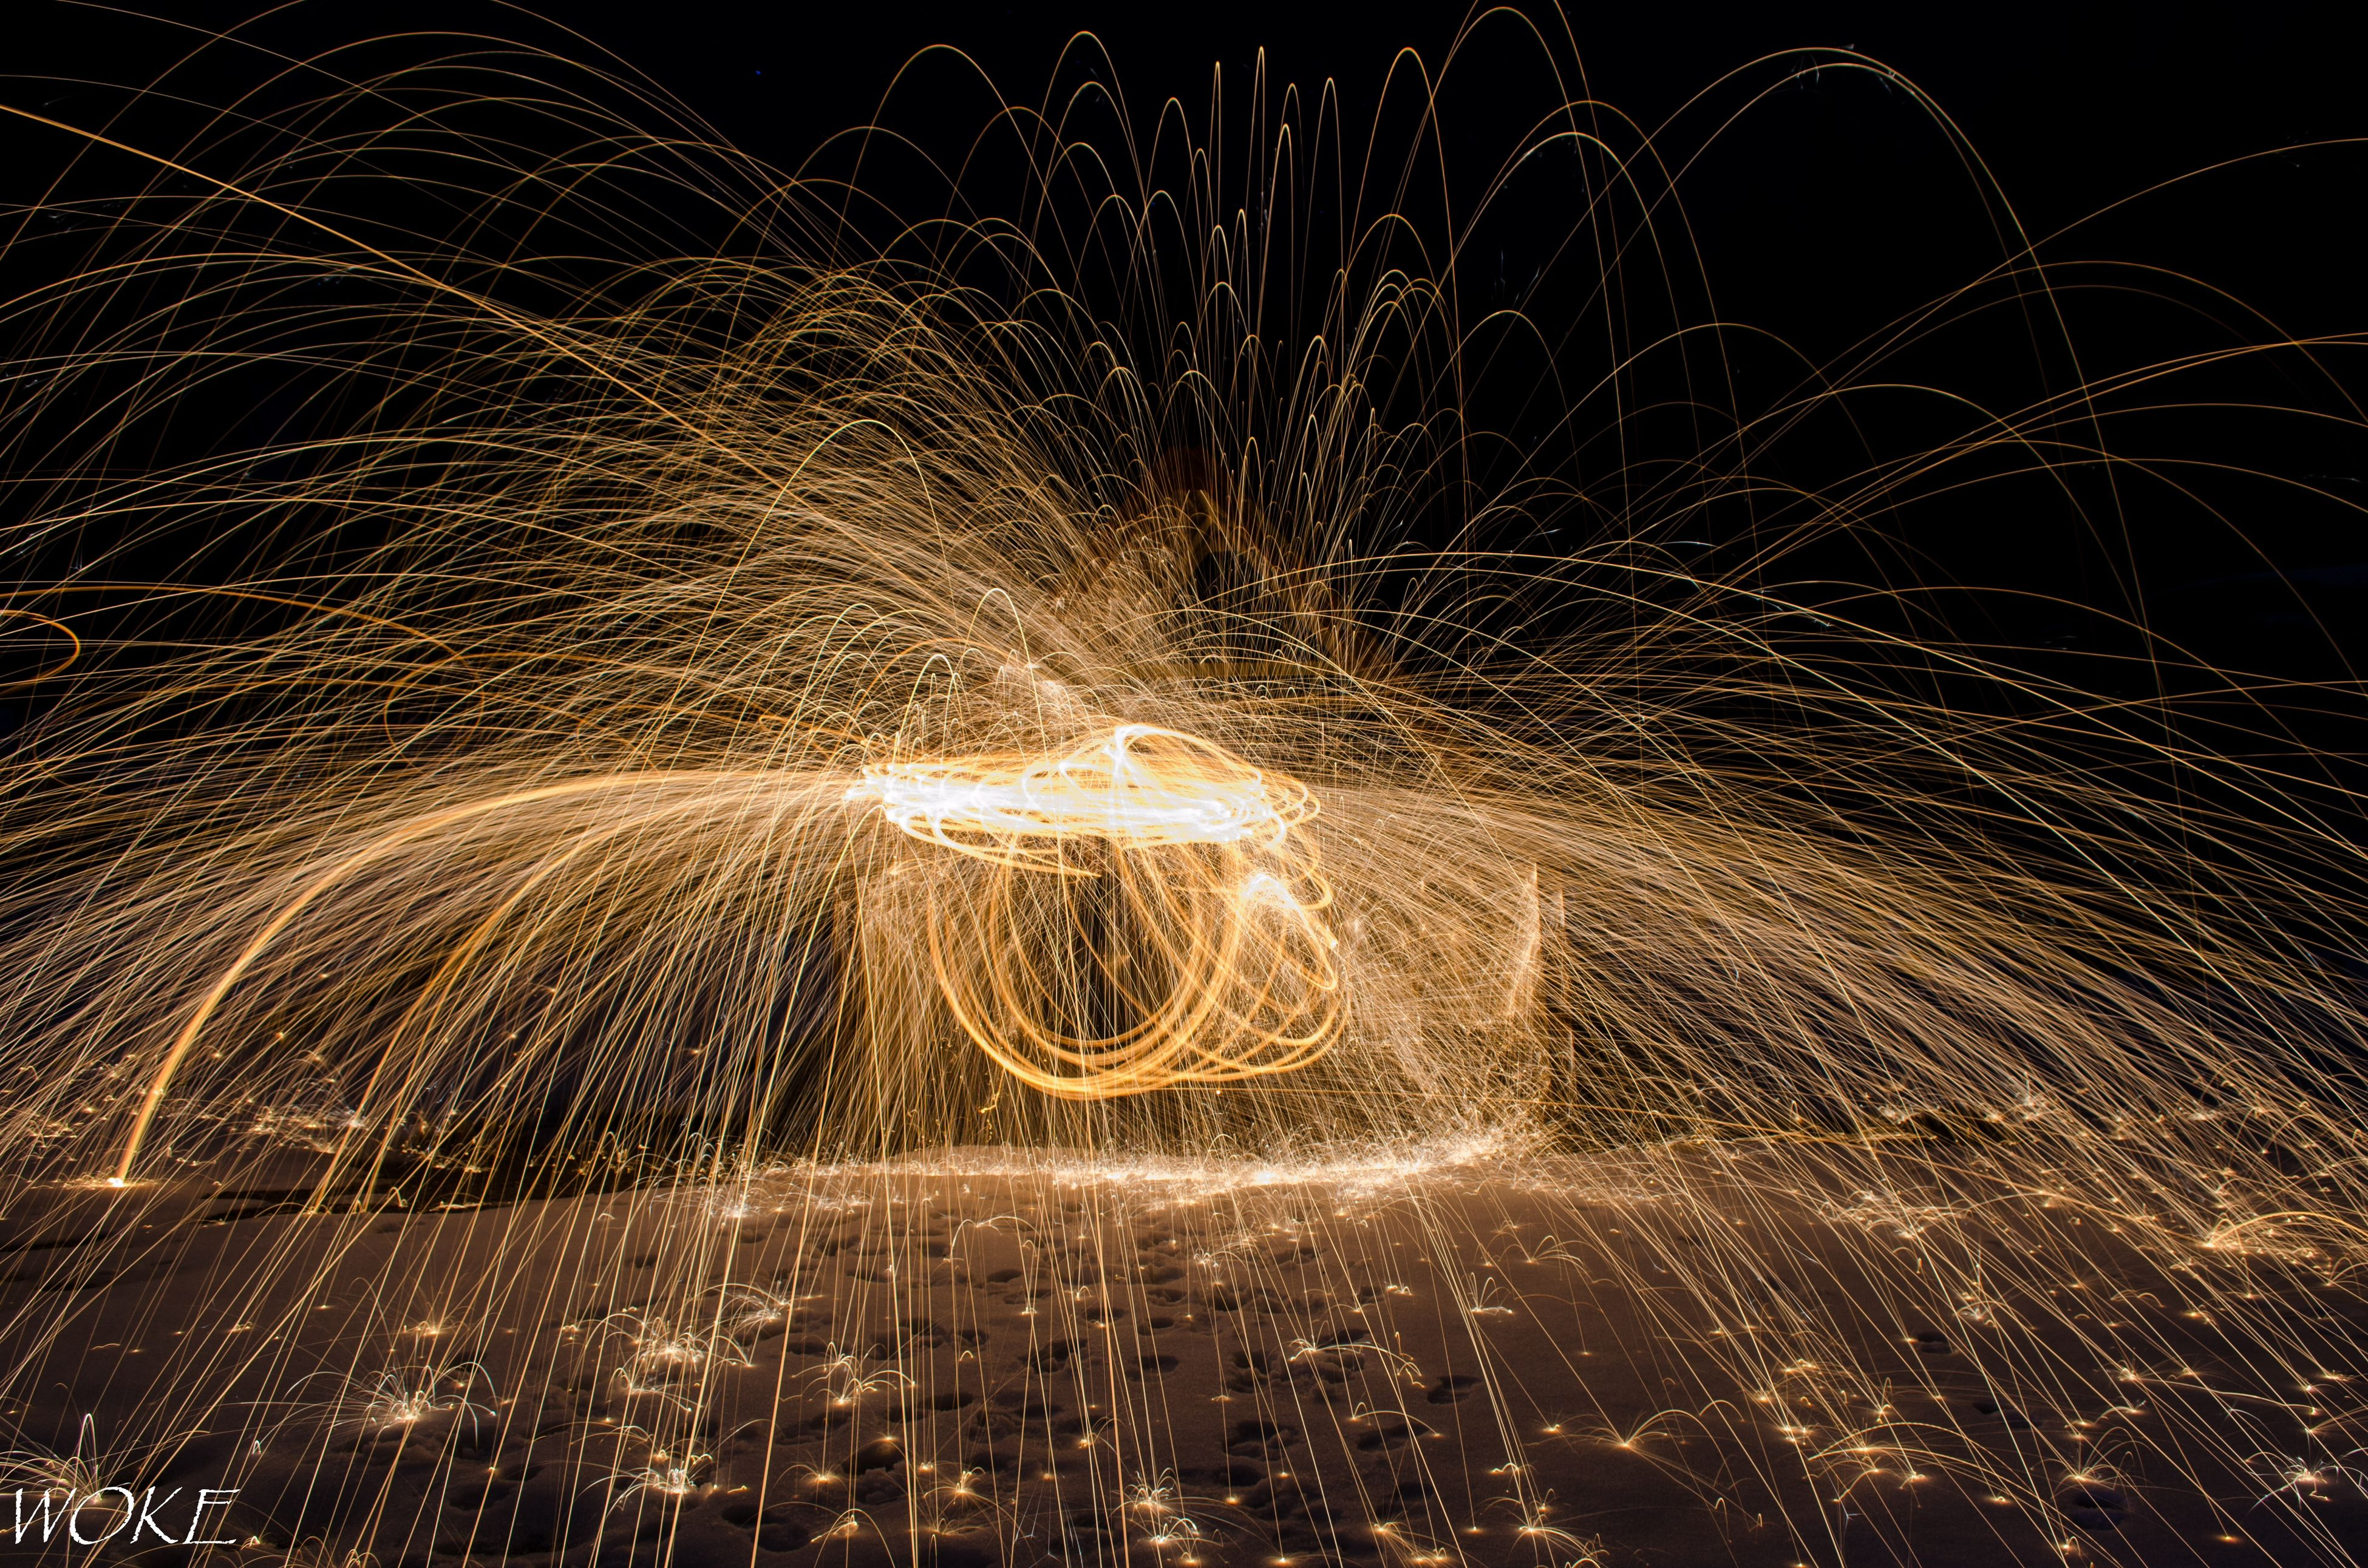 motion, night, long exposure, heat - temperature, blurred motion, sparks, illuminated, burning, close-up, no people, flame, outdoors, speed, wire wool, firework - man made object